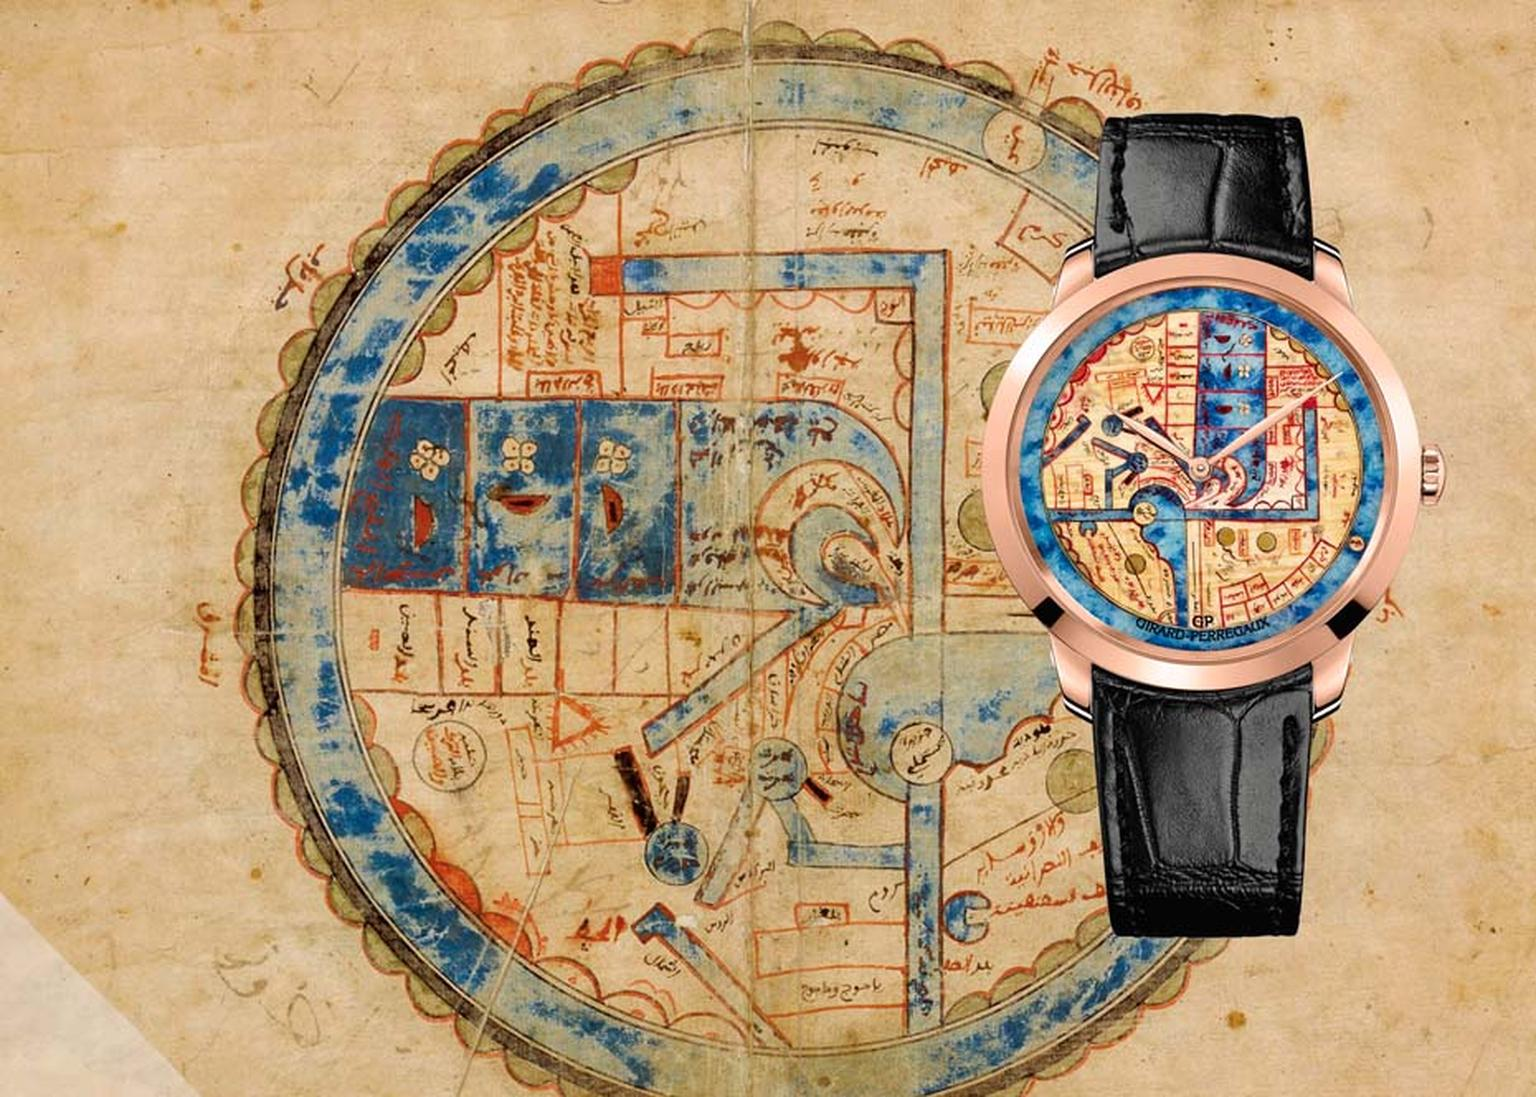 The Pearl of Wonders watch, one of the three new watches in Girard-Perregaux's new Chambers of Wonders collection, is drawn from the cartographic work of the 15th century historian Ibn al-Wardi.